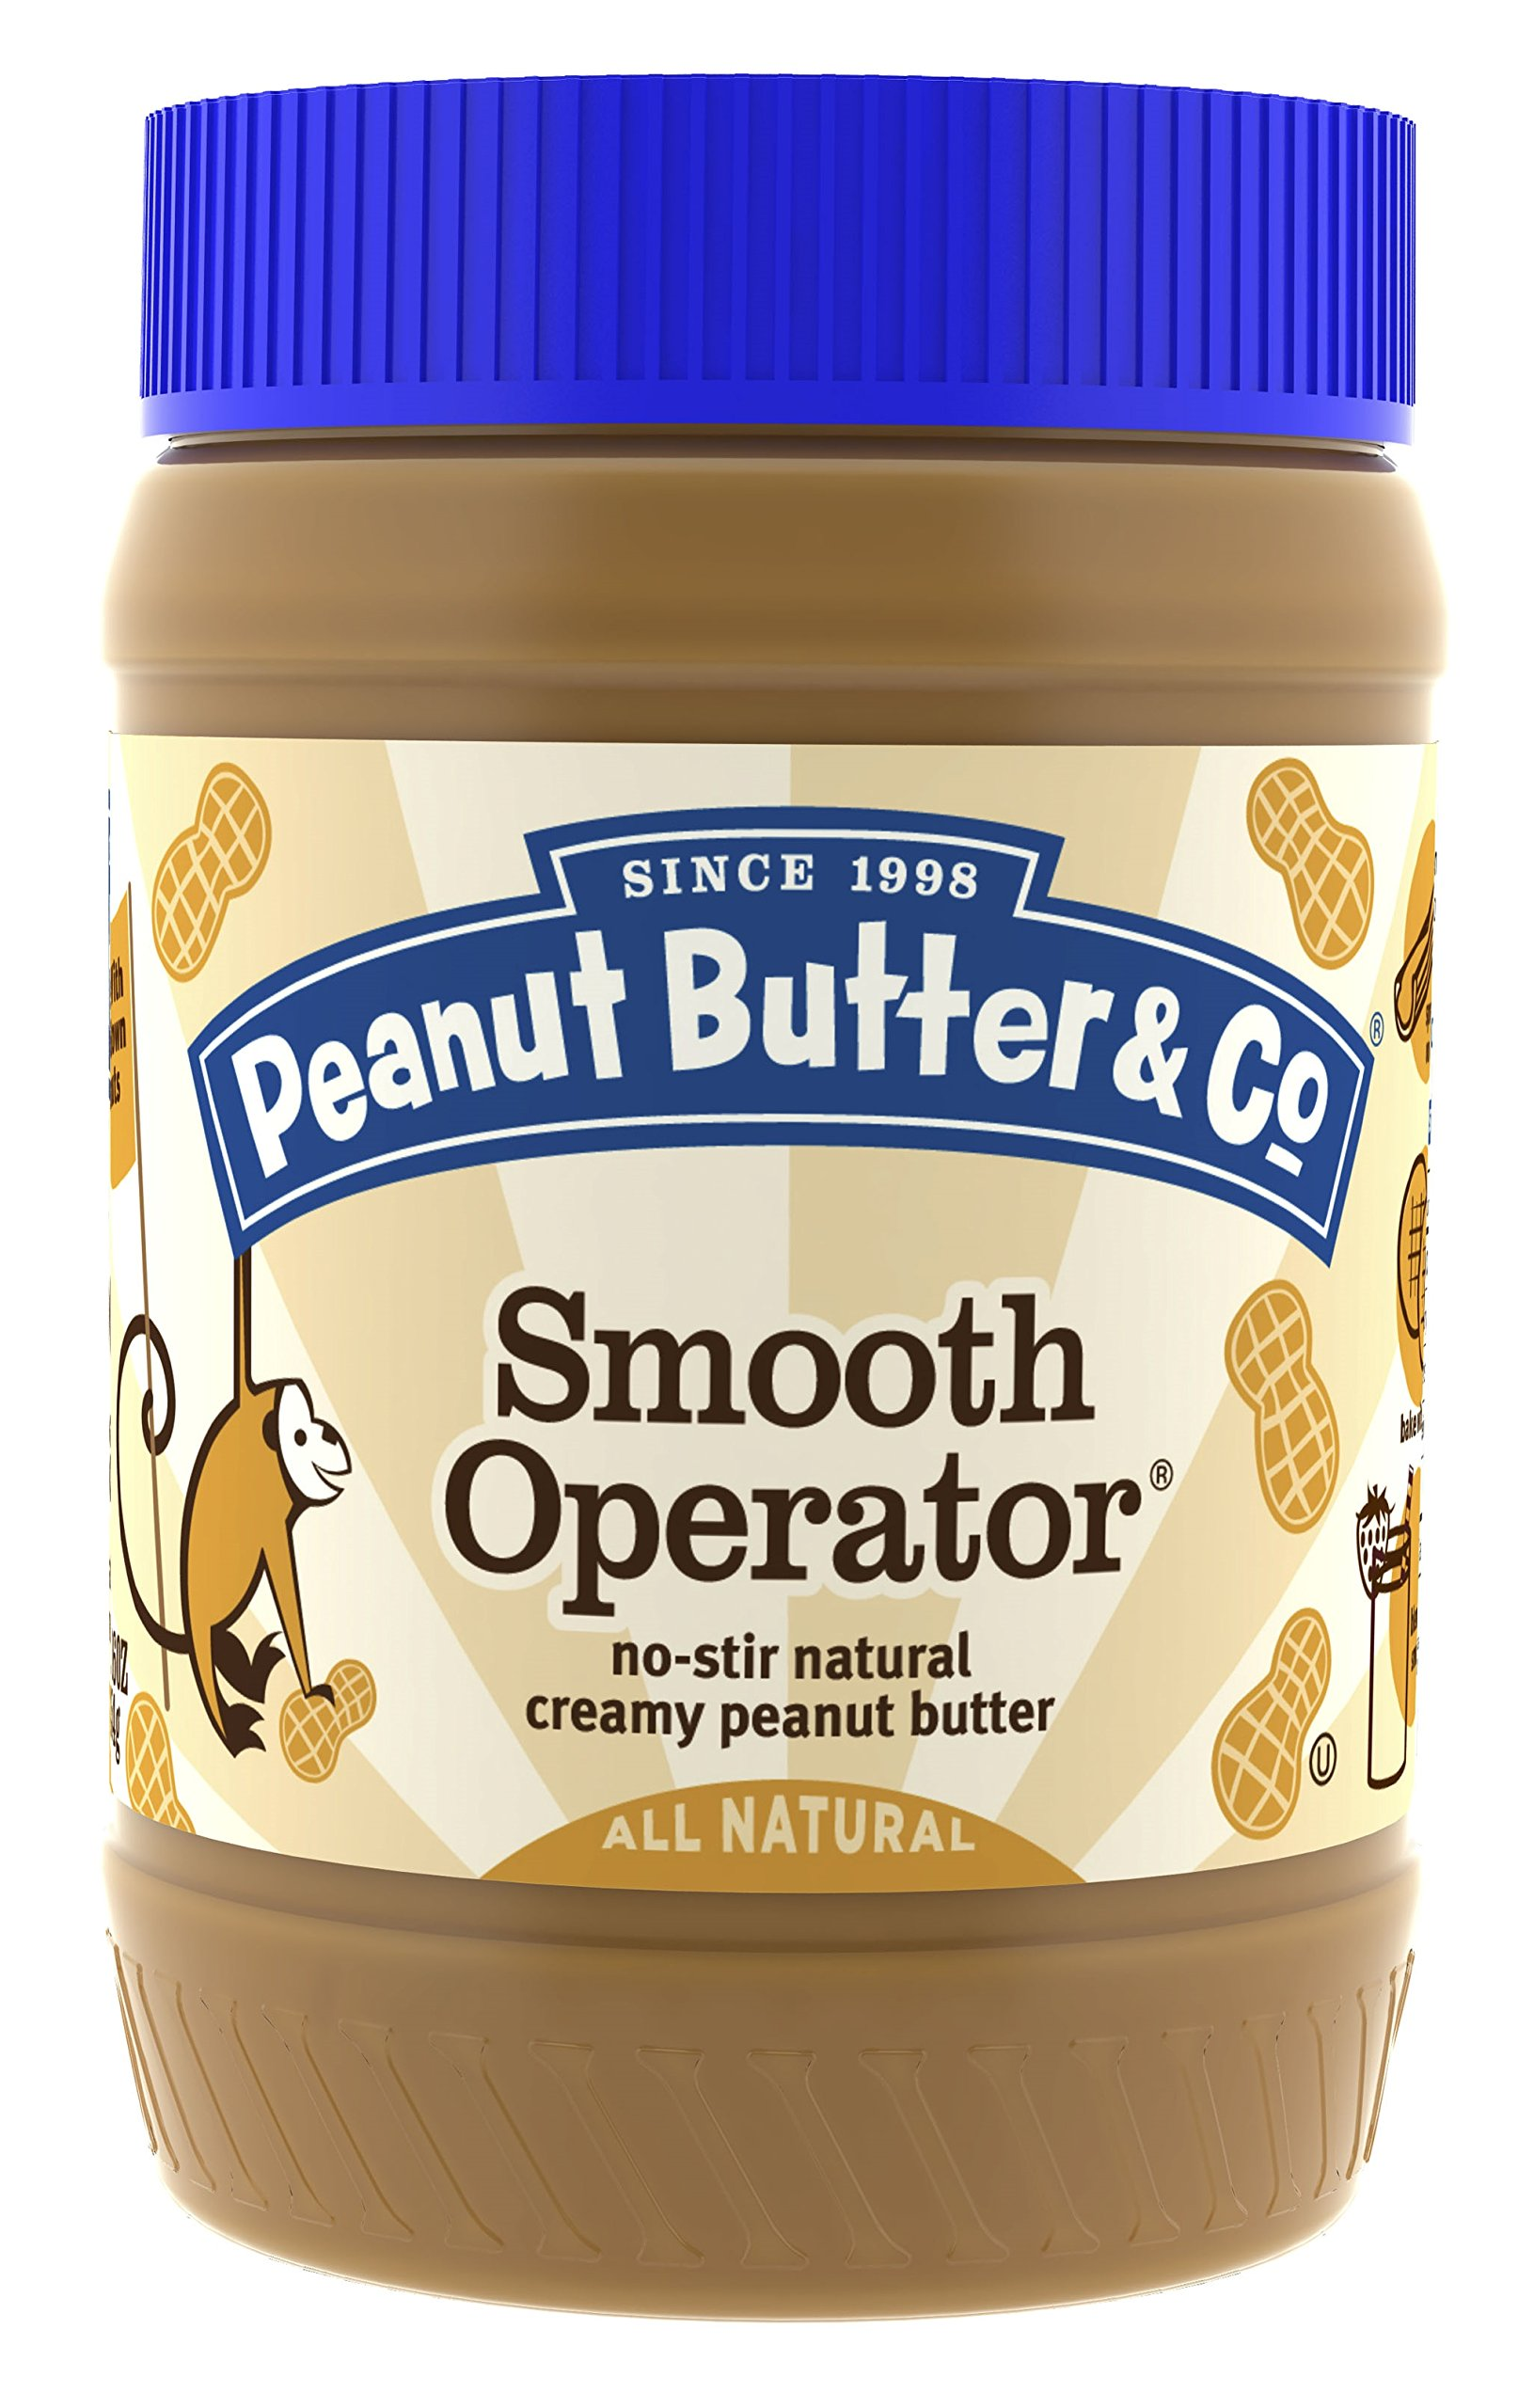 Peanut Butter & Co. Non-GMO, Gluten Free, Vegan Peanut Butter, Smooth Operator, 16 Ounce Jars (Pack of 6)